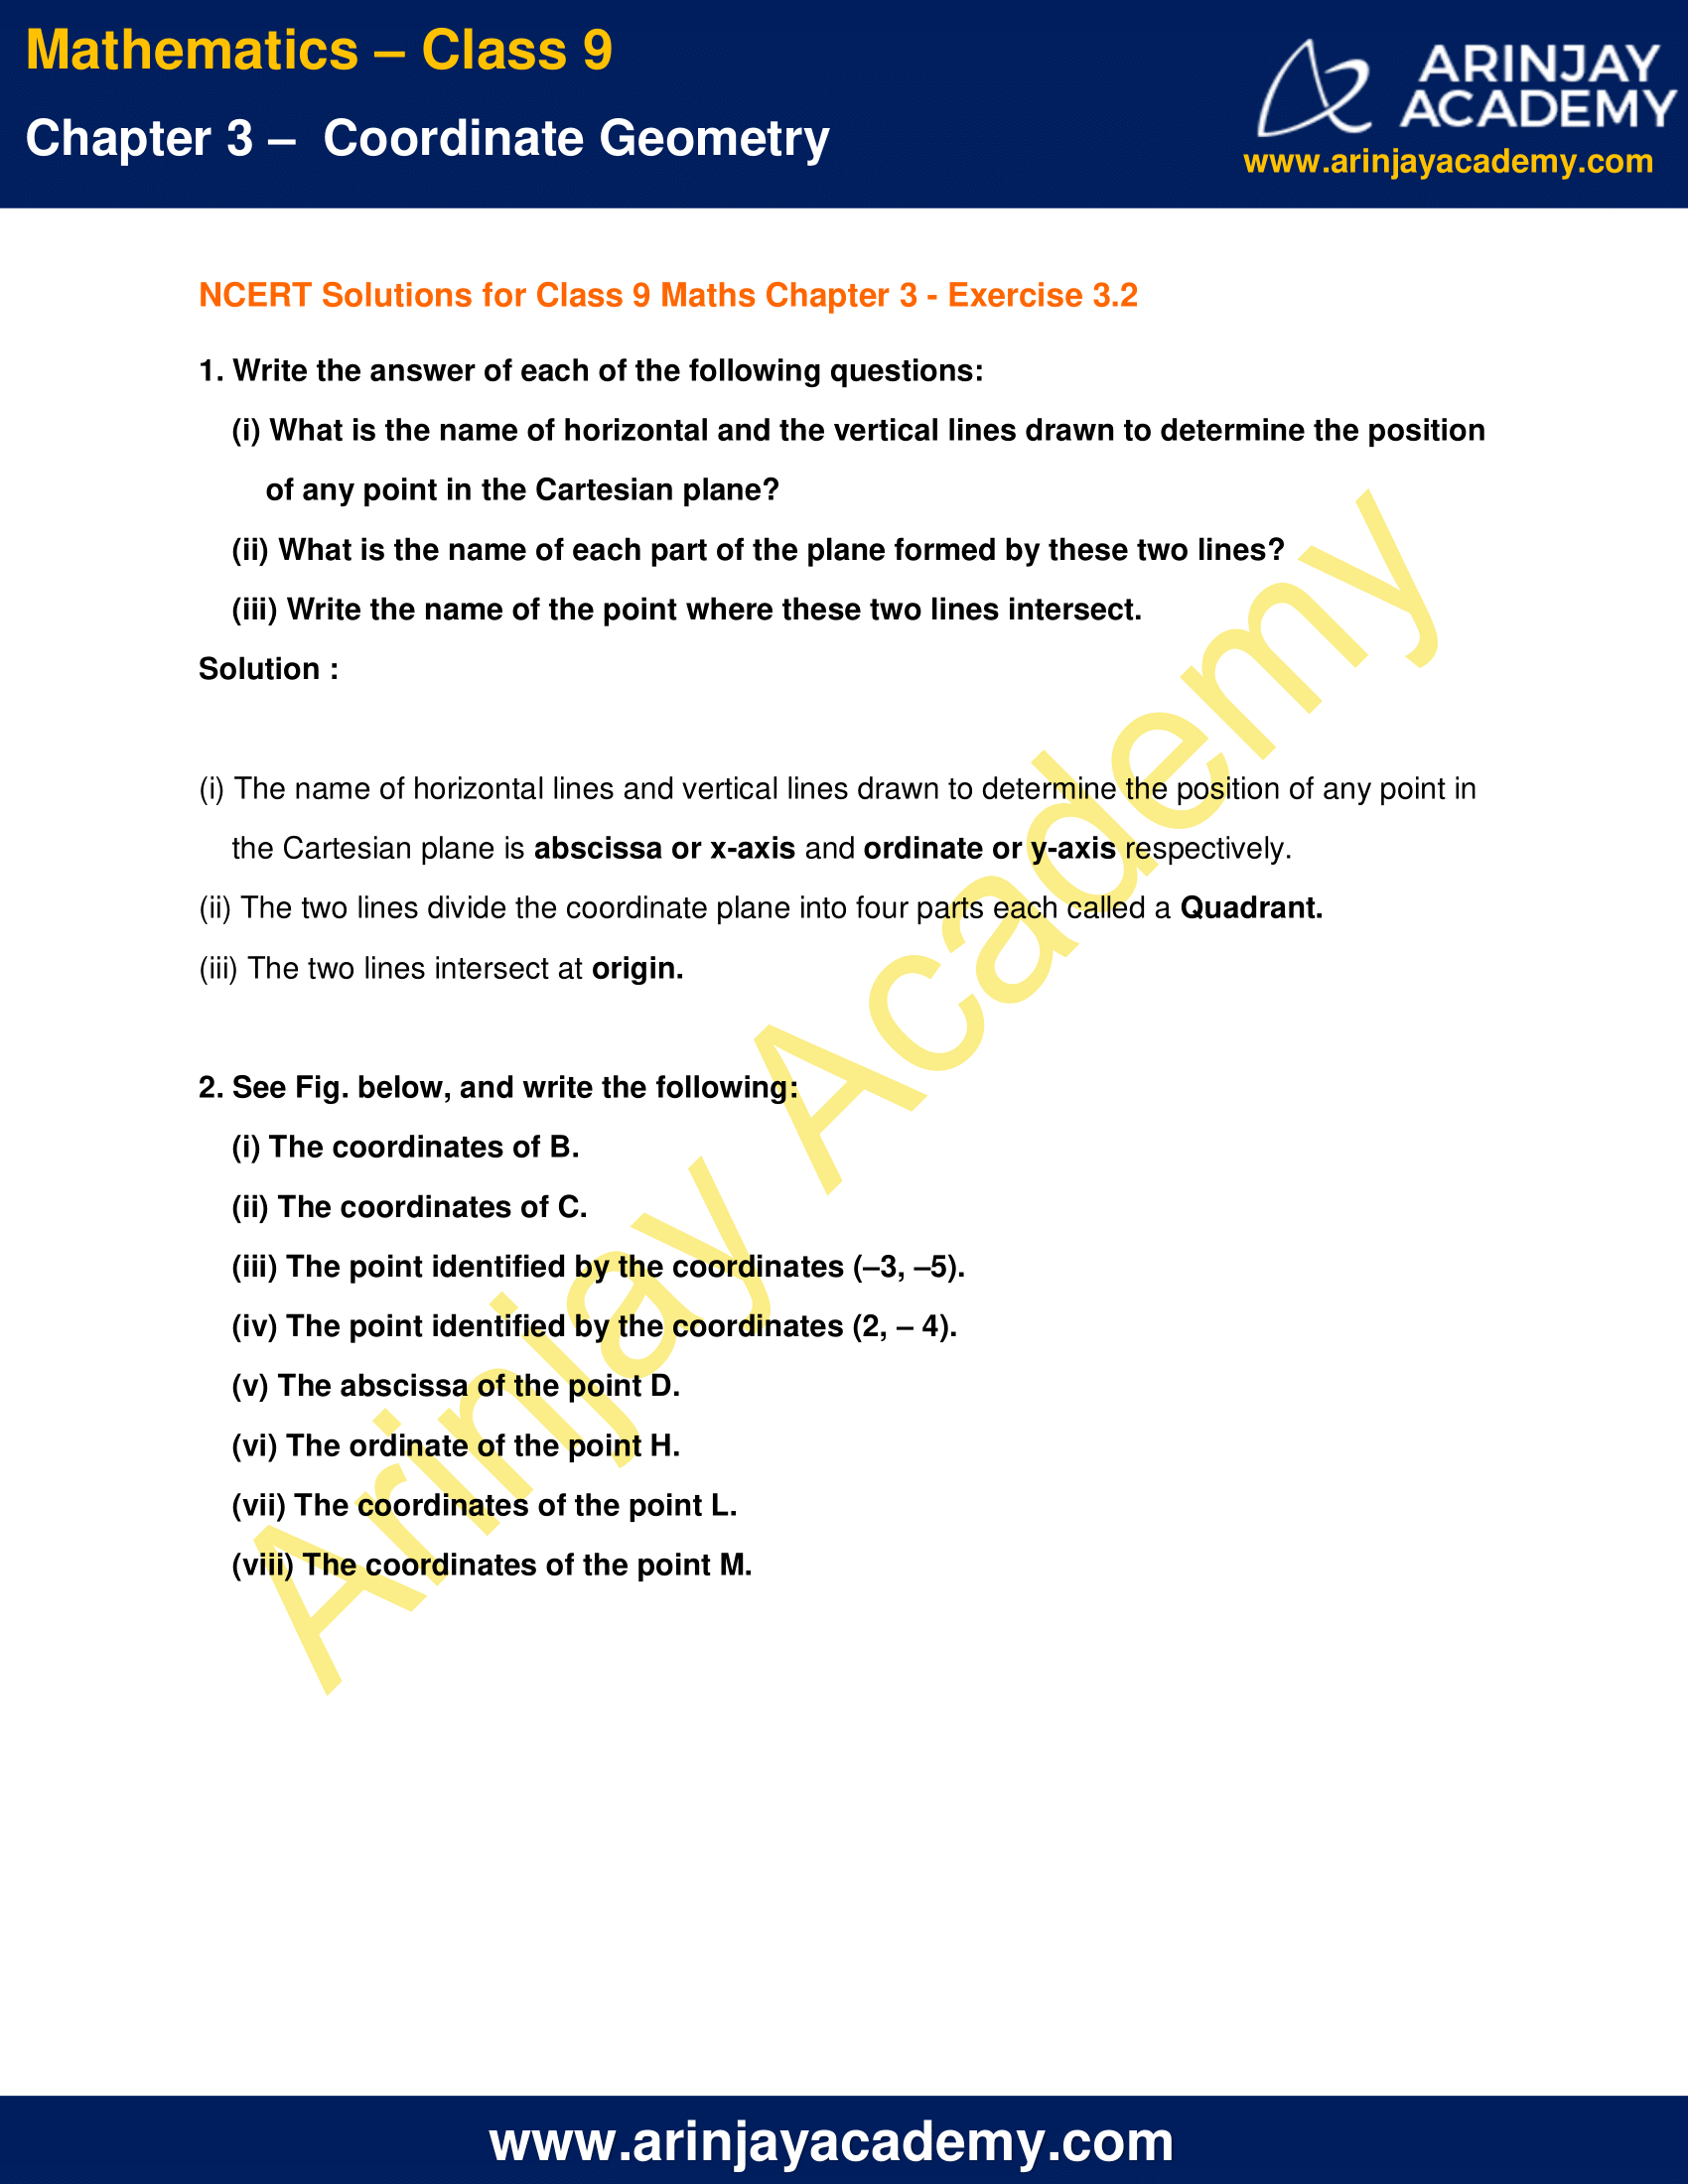 NCERT Solutions for Class 9 Maths Chapter 3 Exercise 3.2 image 1